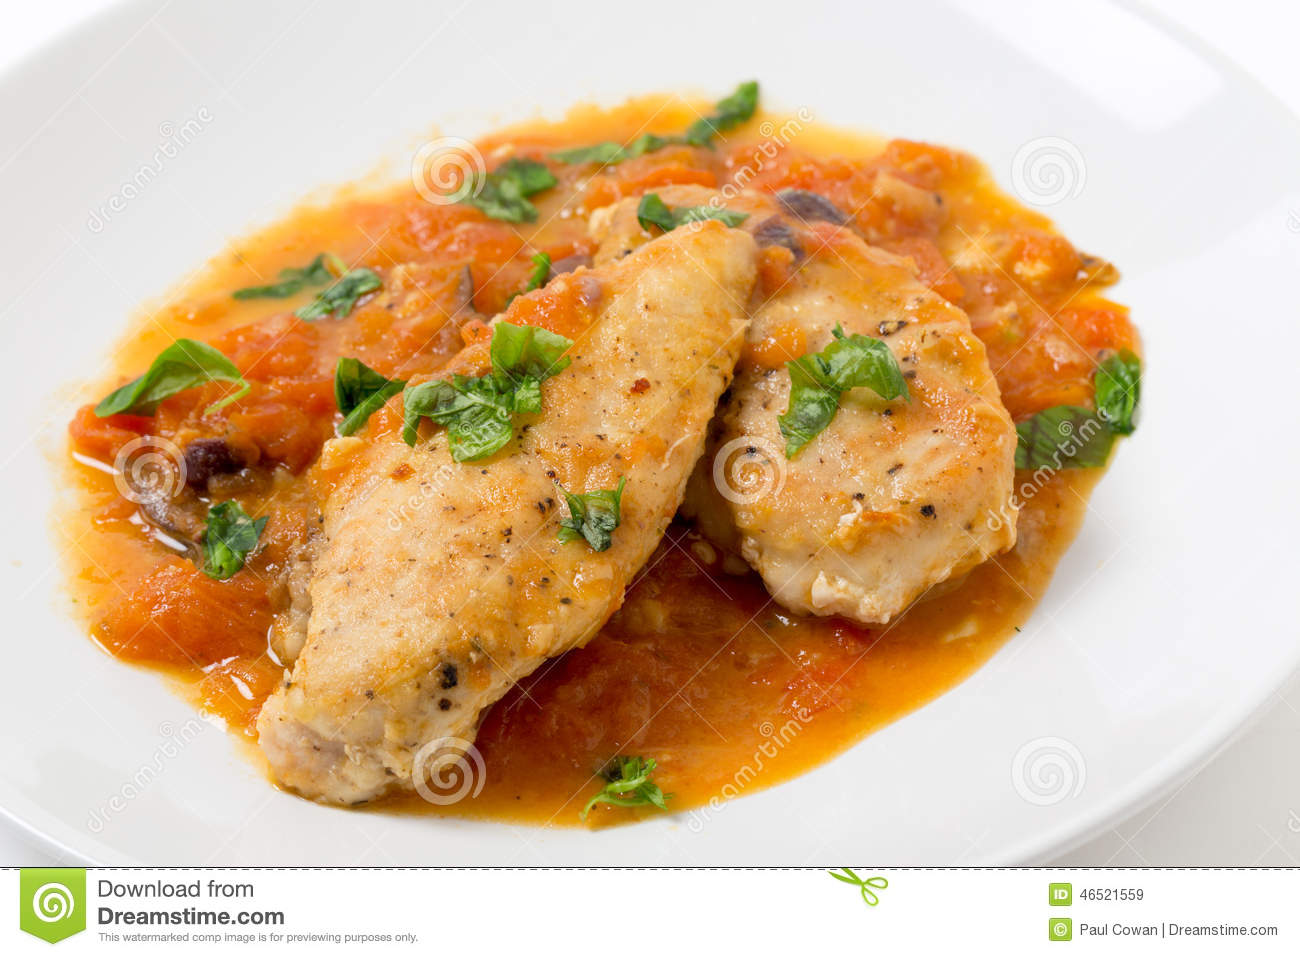 Chicken Breasts with Provencal Sauce